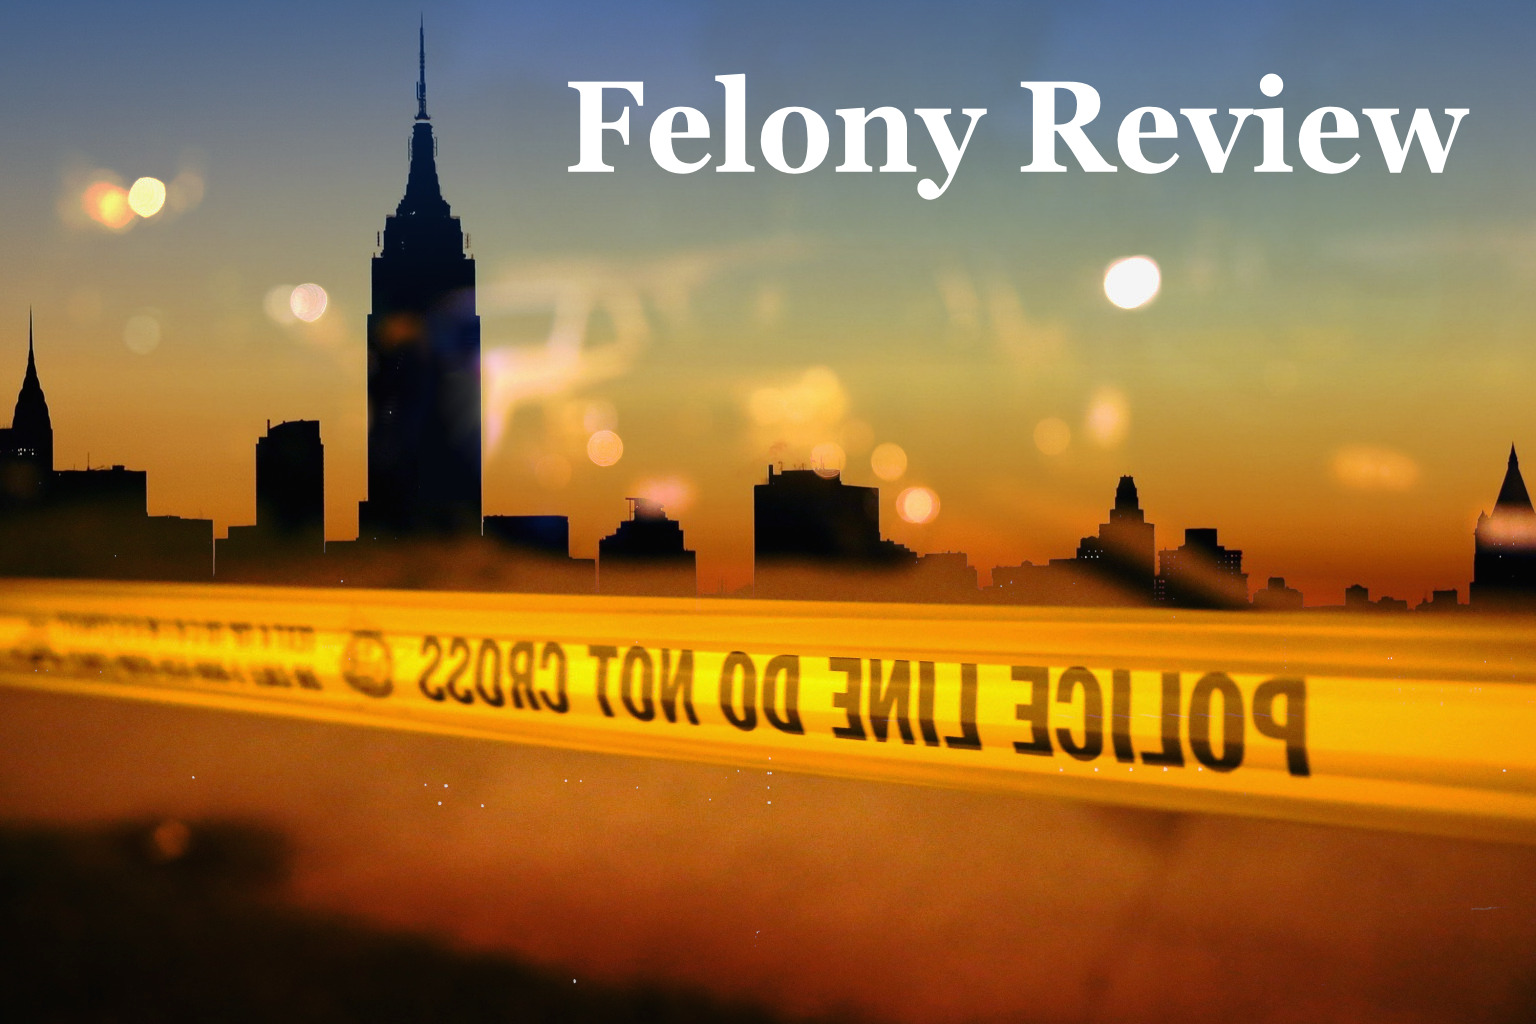 Felony Review